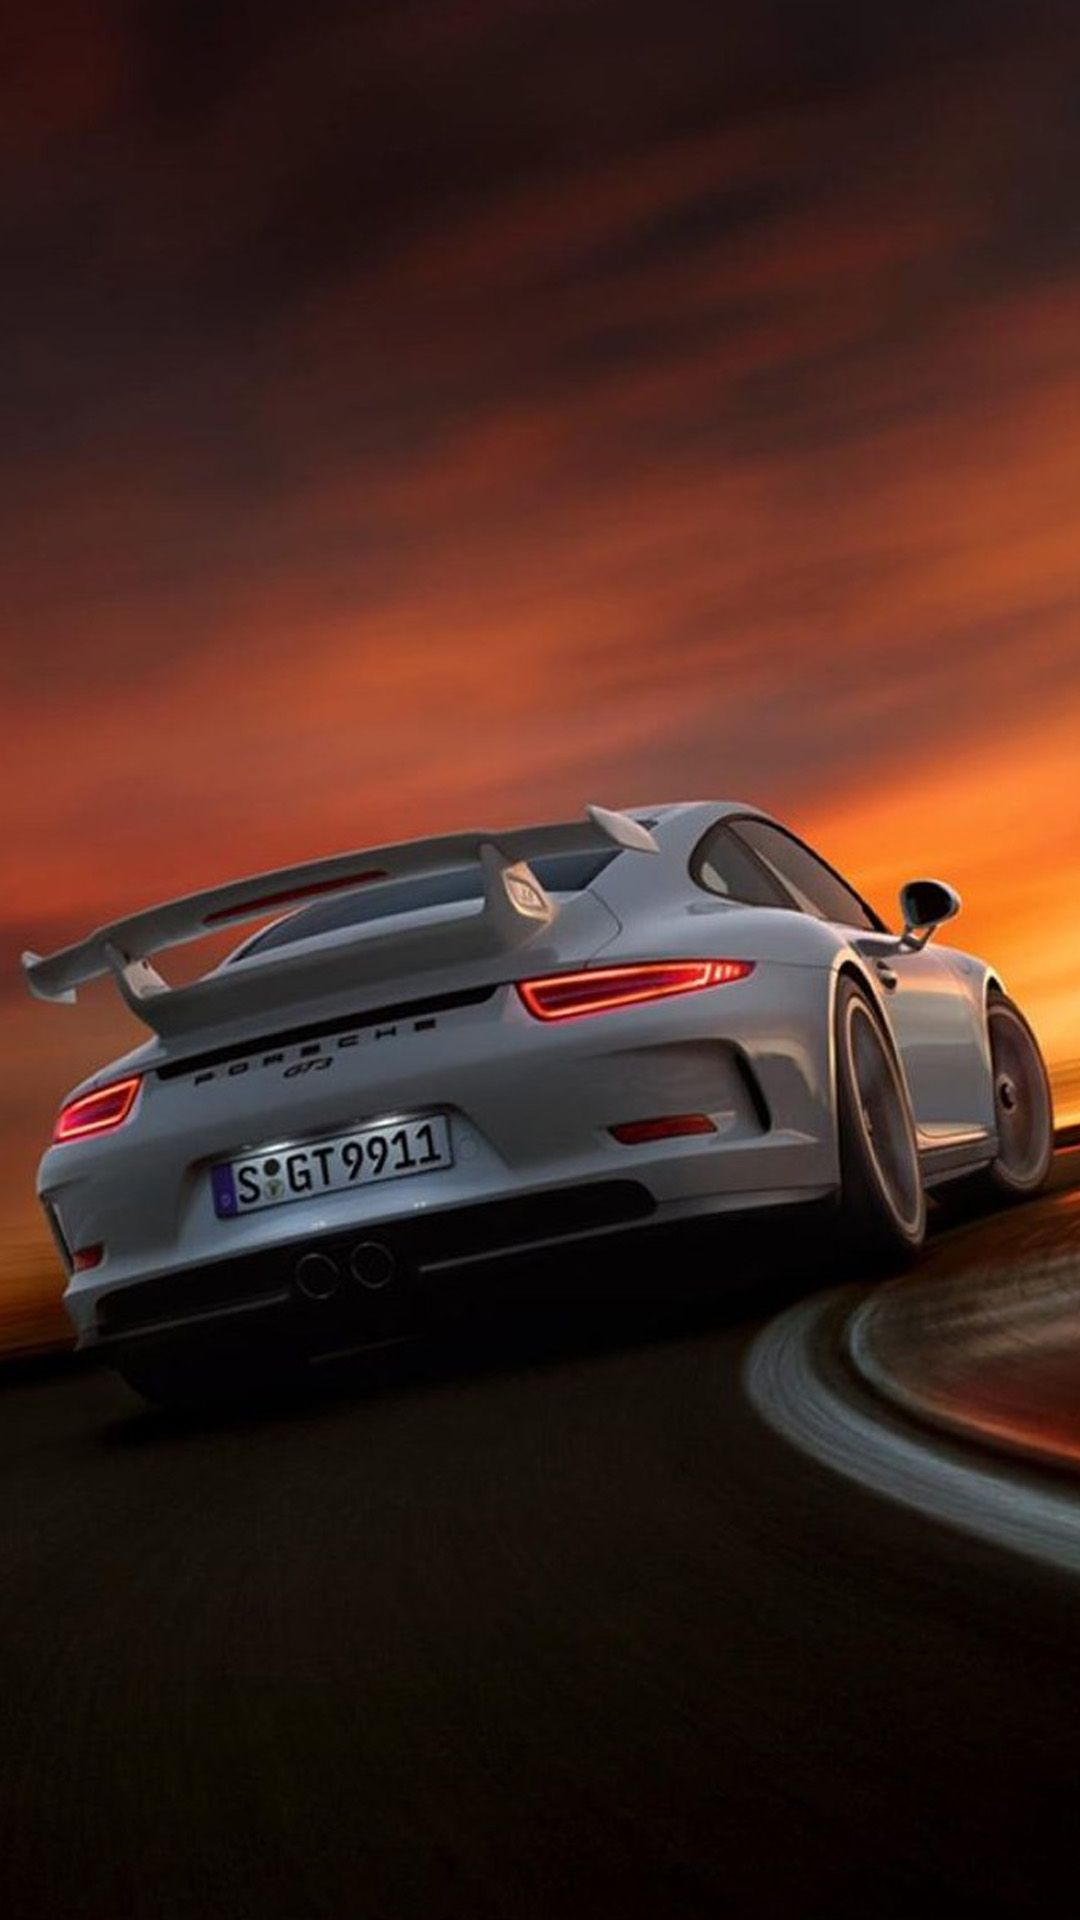 Porsche 911 Wallpaper Iphone Android Porsche 911 Gt3 Car Wallpapers Porsche